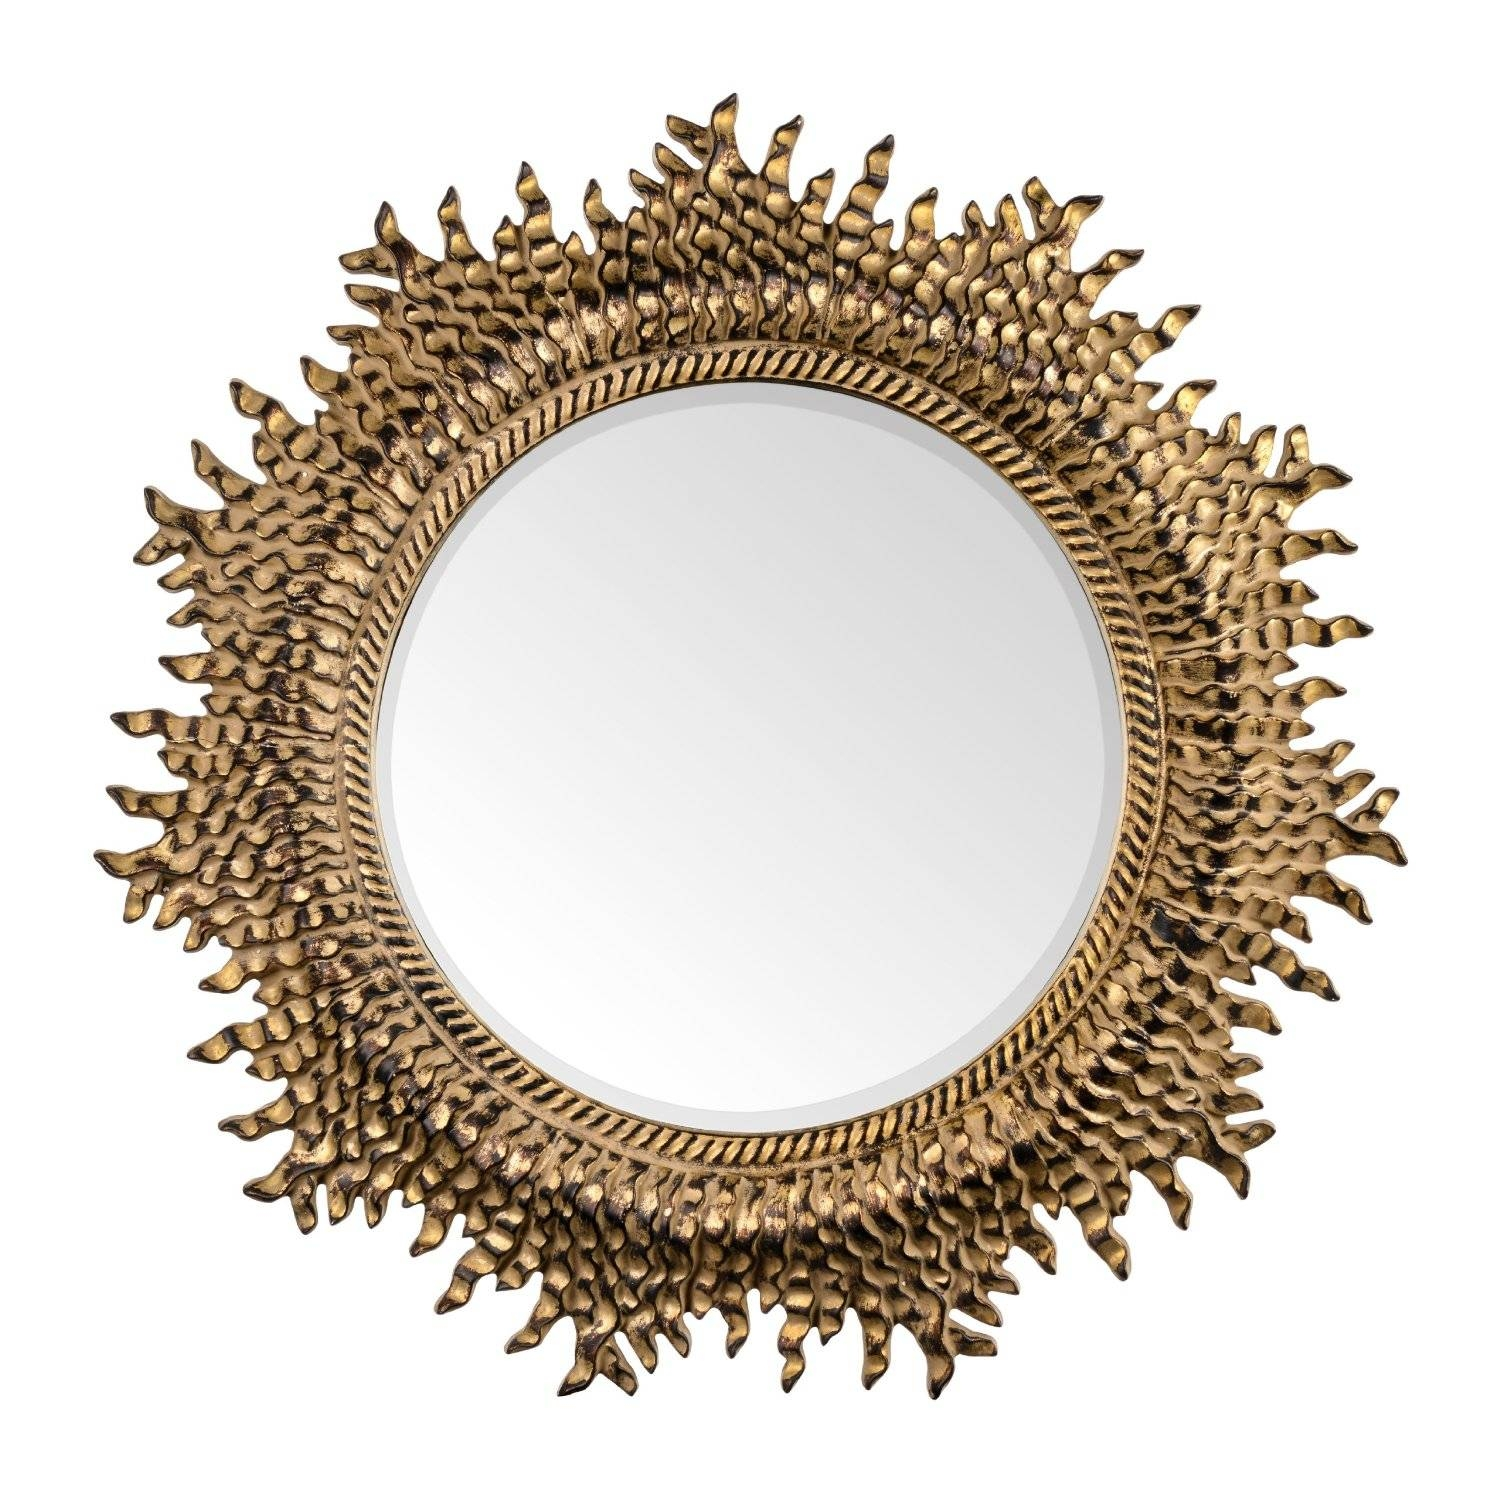 16 Ornate Mirrors For Your Home | Qosy in Ornate Mirrors (Image 2 of 25)